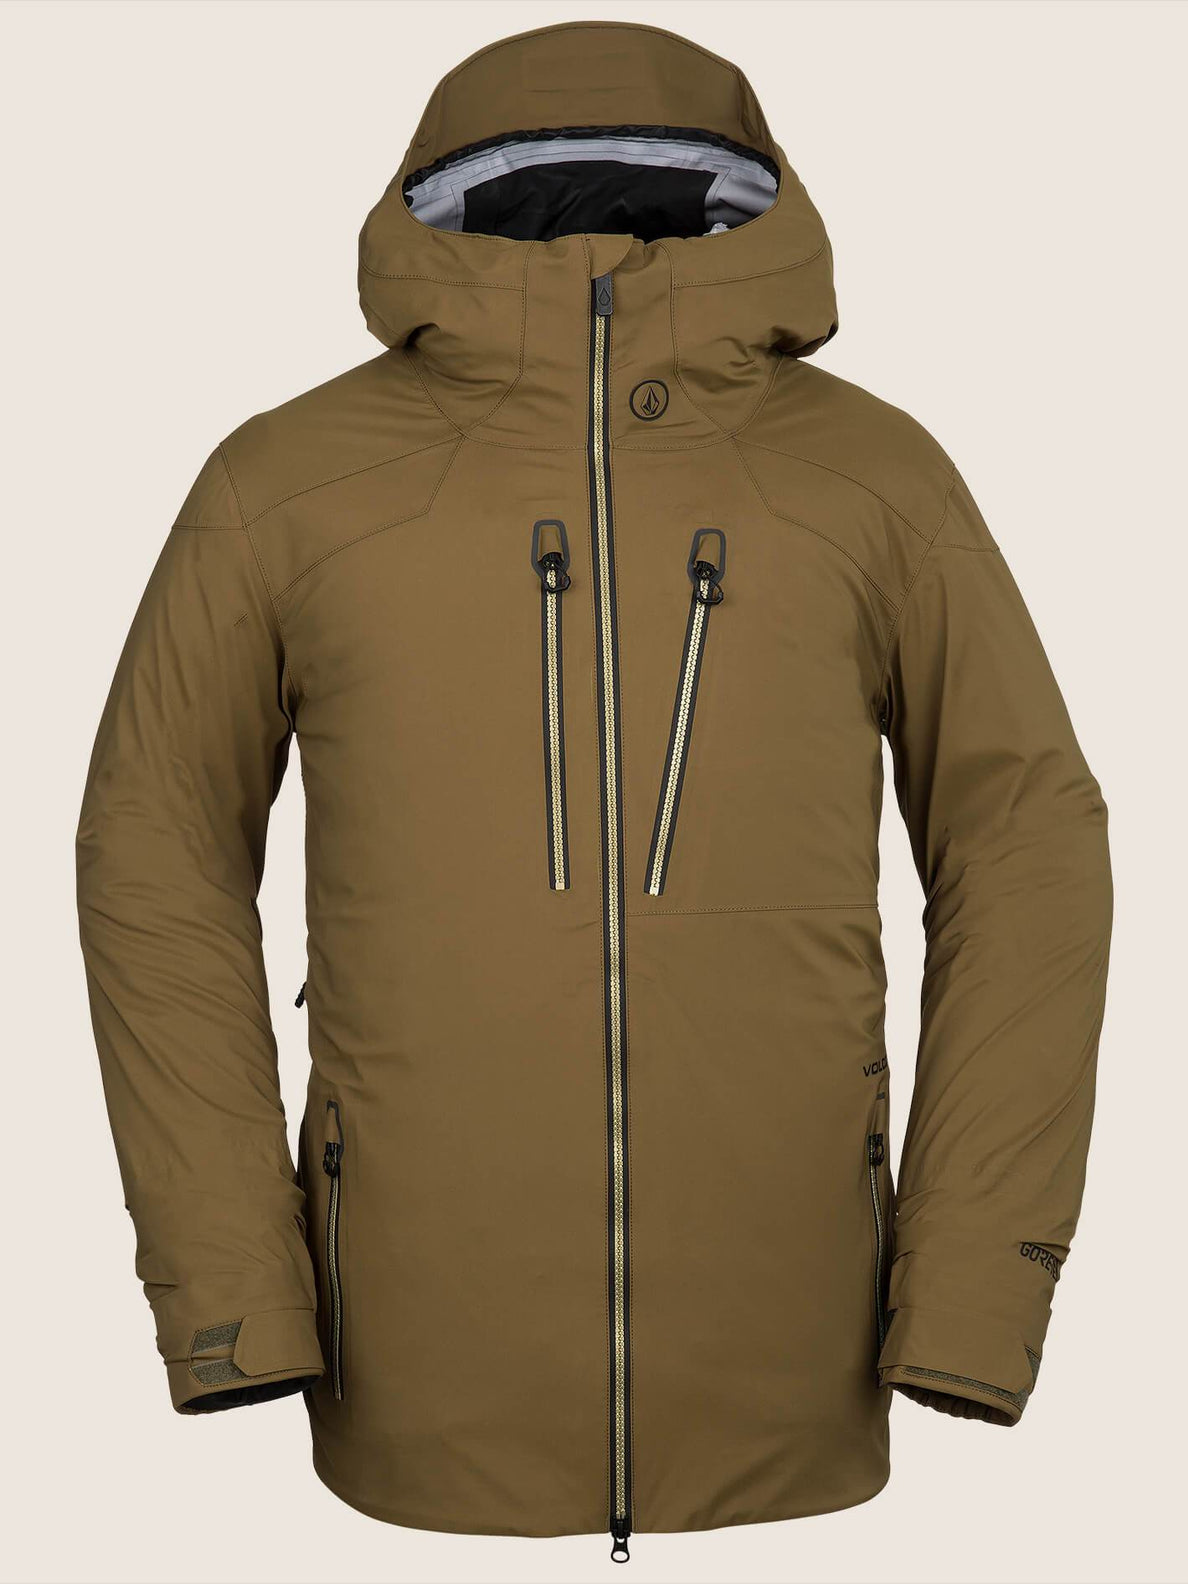 bcd7913a Guch Stretch GORE-TEX Jacket - Moss – Volcom Europe